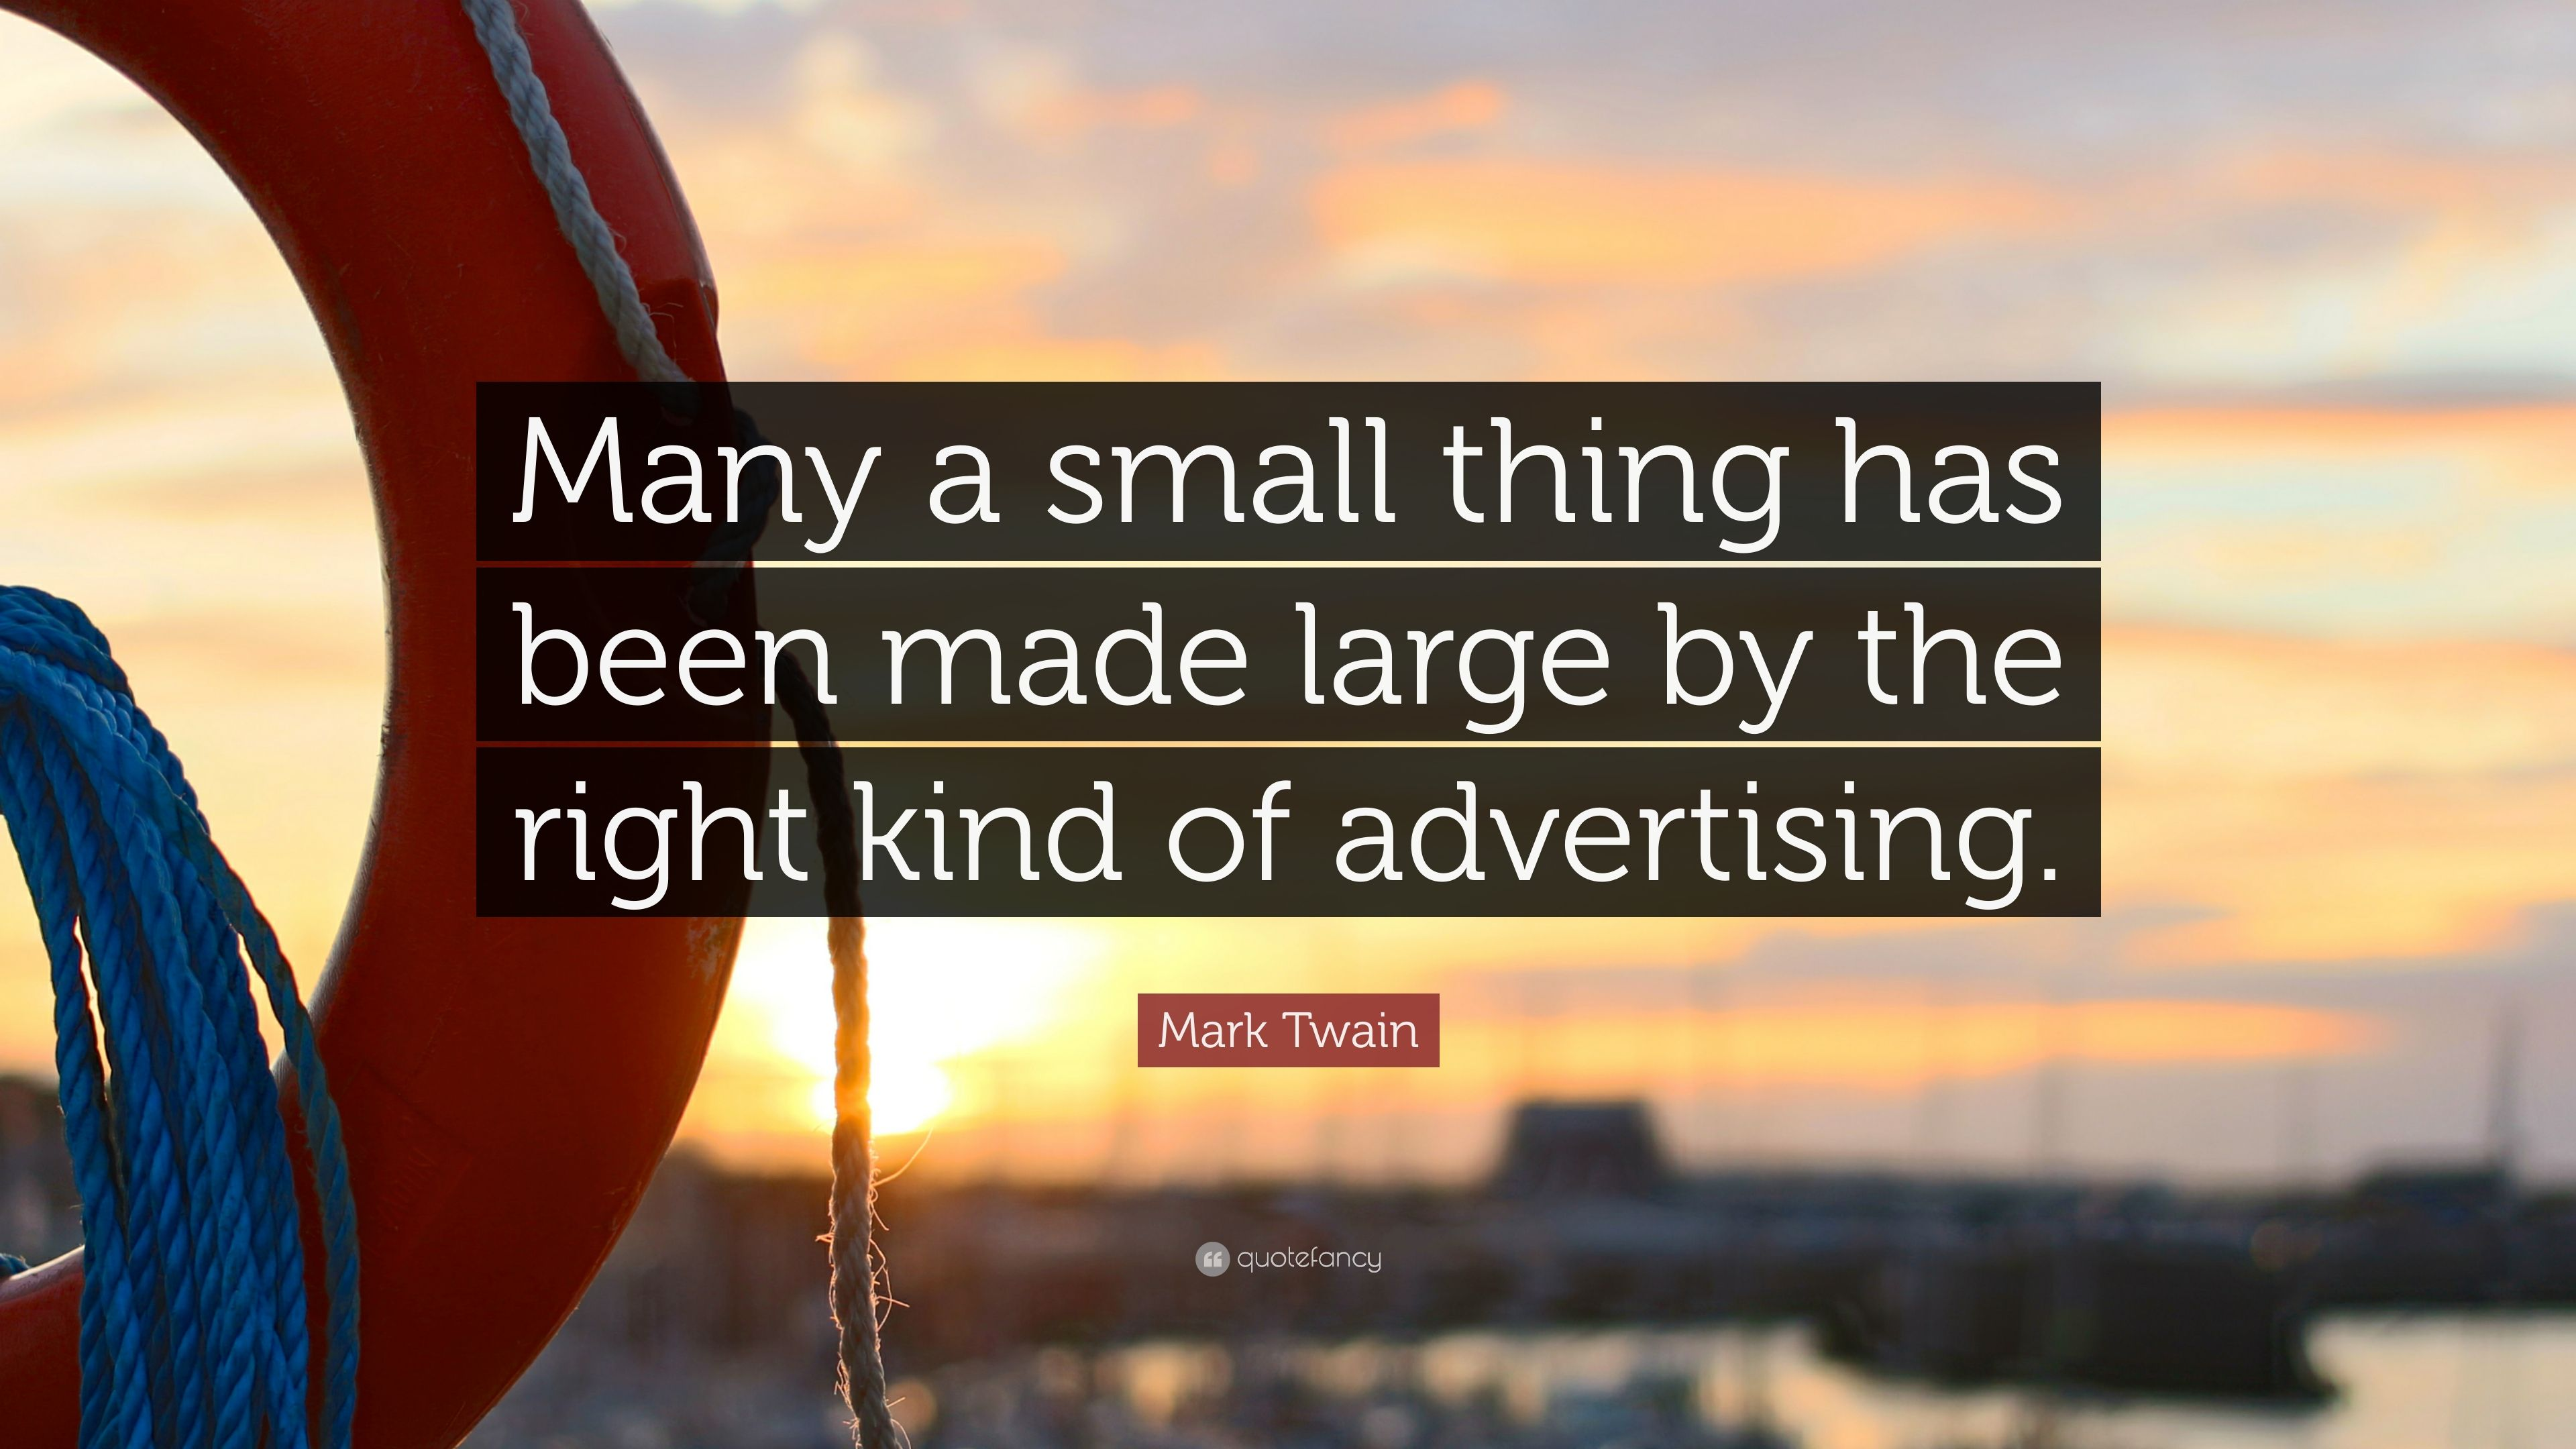 4709338-Mark-Twain-Quote-Many-a-small-thing-has-been-made-large-by-the